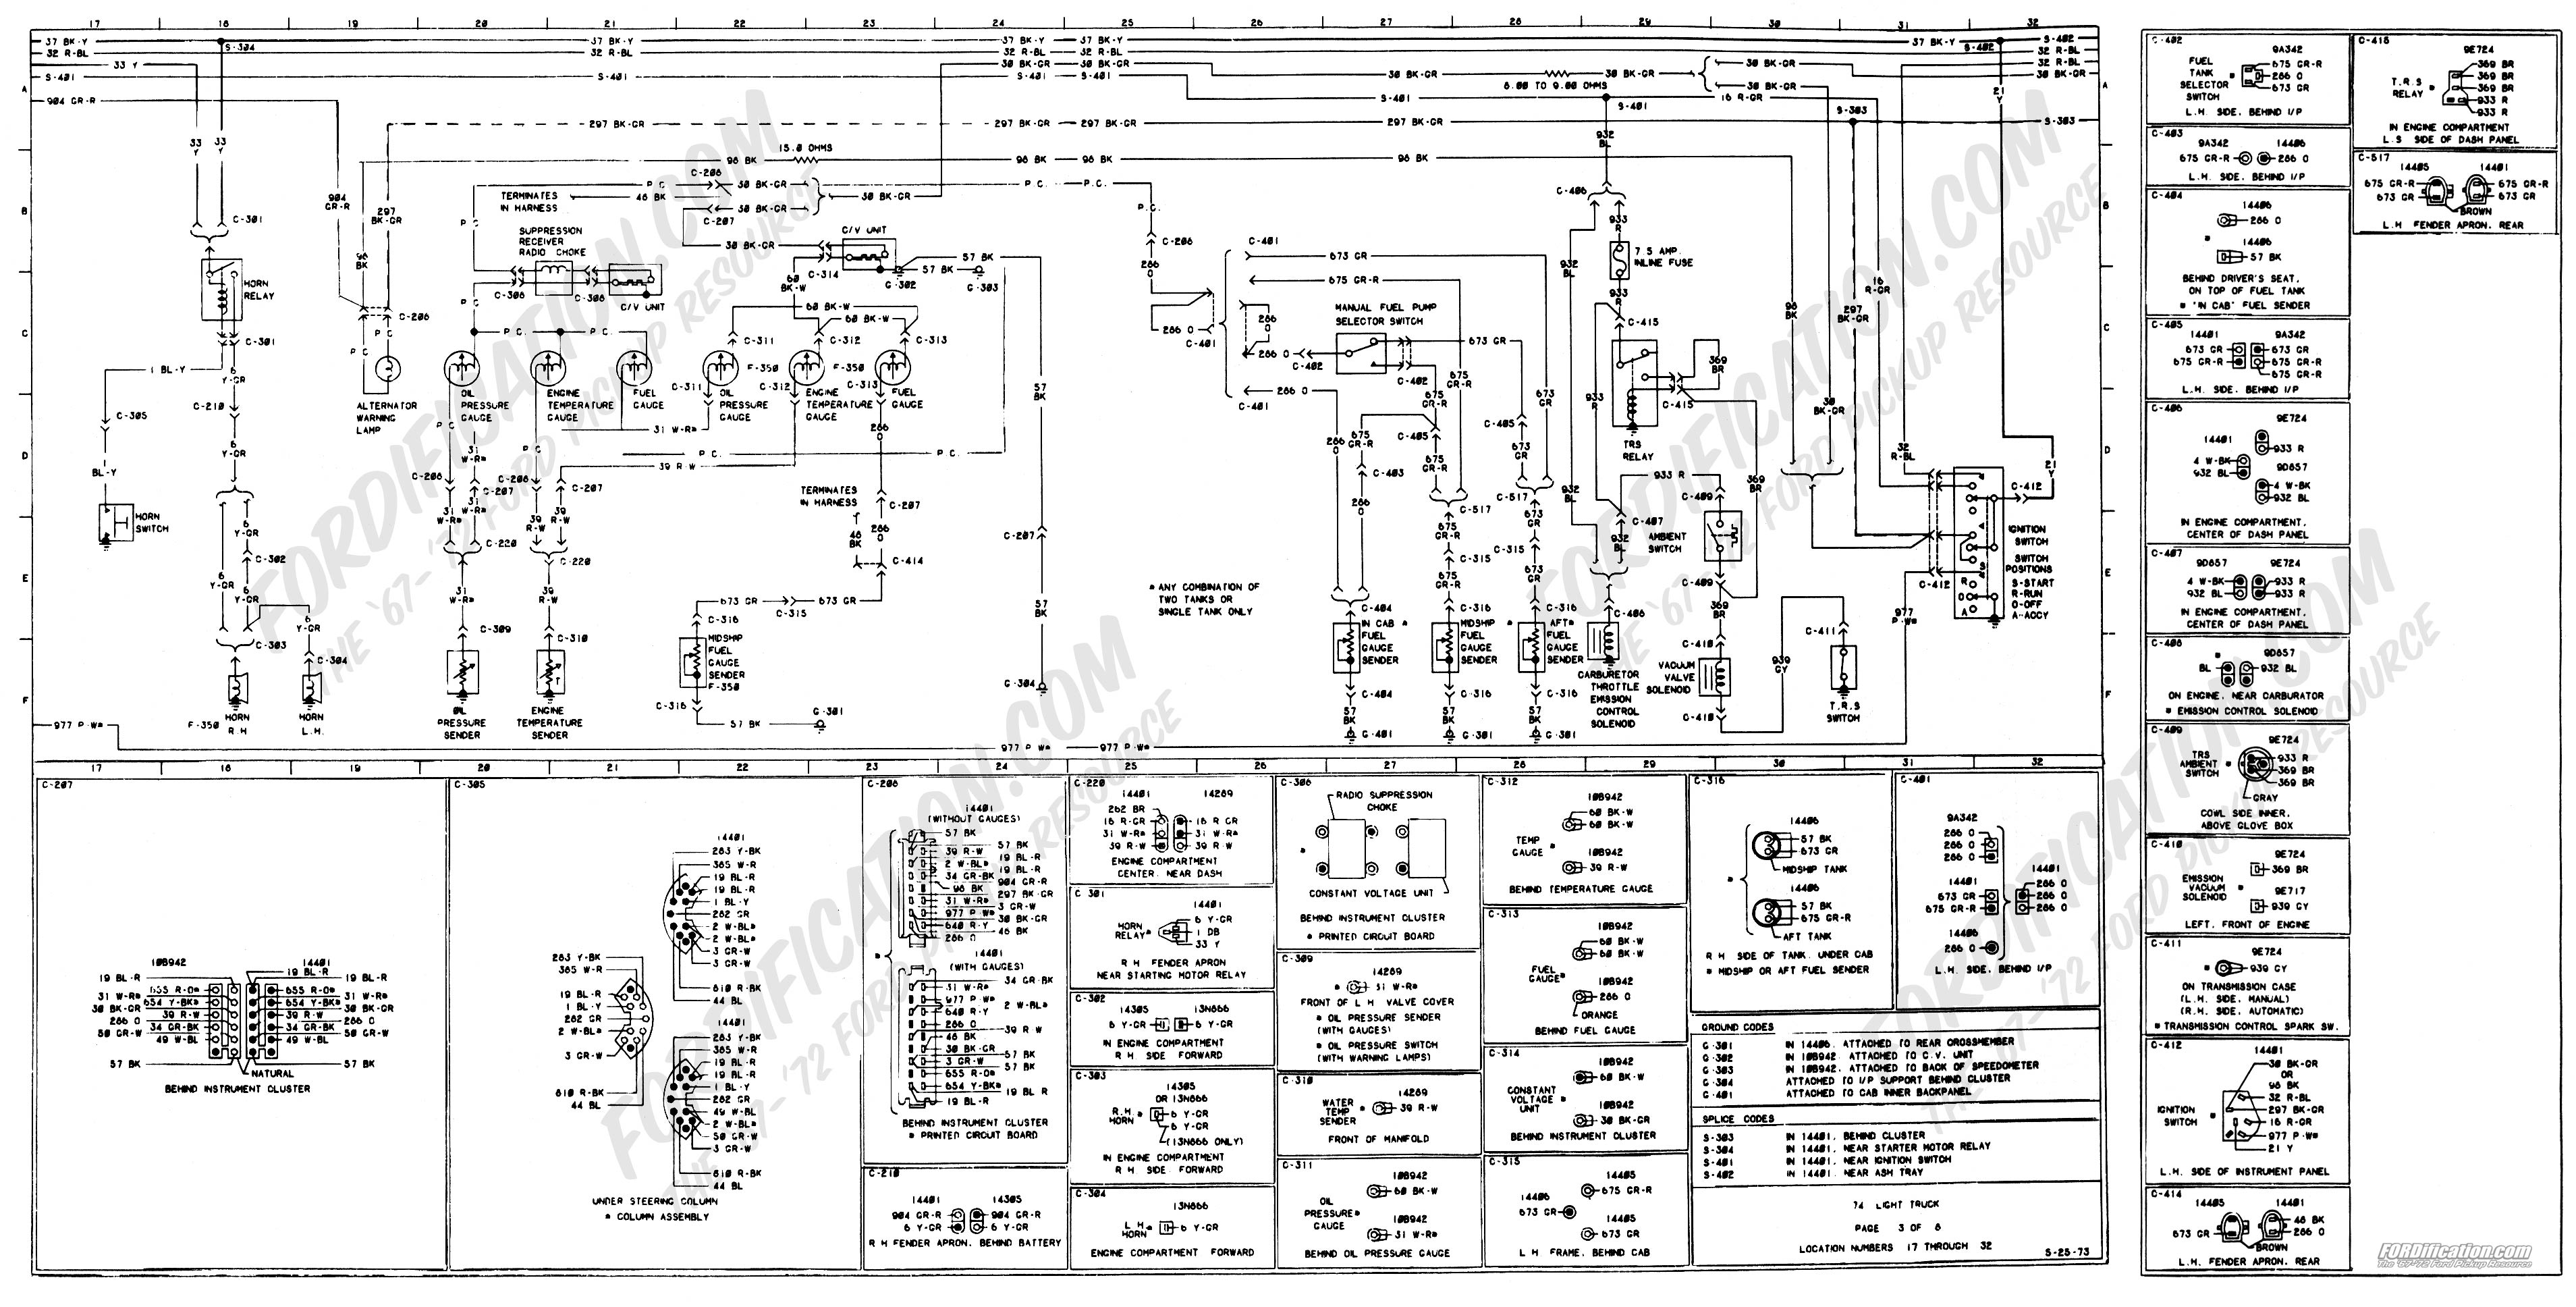 wiring_74master_3of8 1973 1979 ford truck wiring diagrams & schematics fordification net ford truck wiring diagrams free at webbmarketing.co